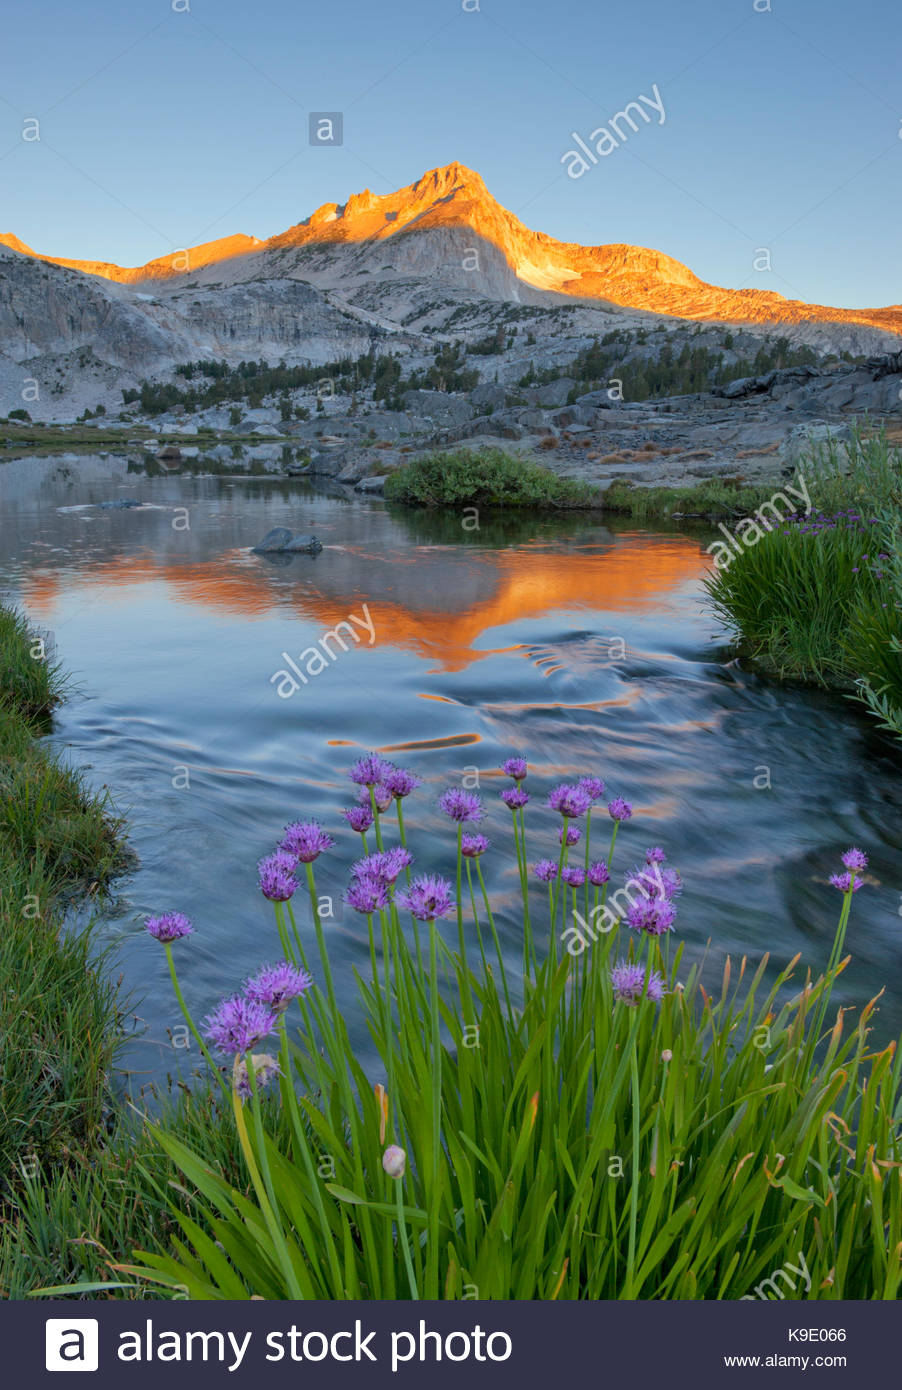 Wild Onion, Greenstone Lake and North Peak, Hoover Wilderness, Inyo National Forest, California - Stock Image